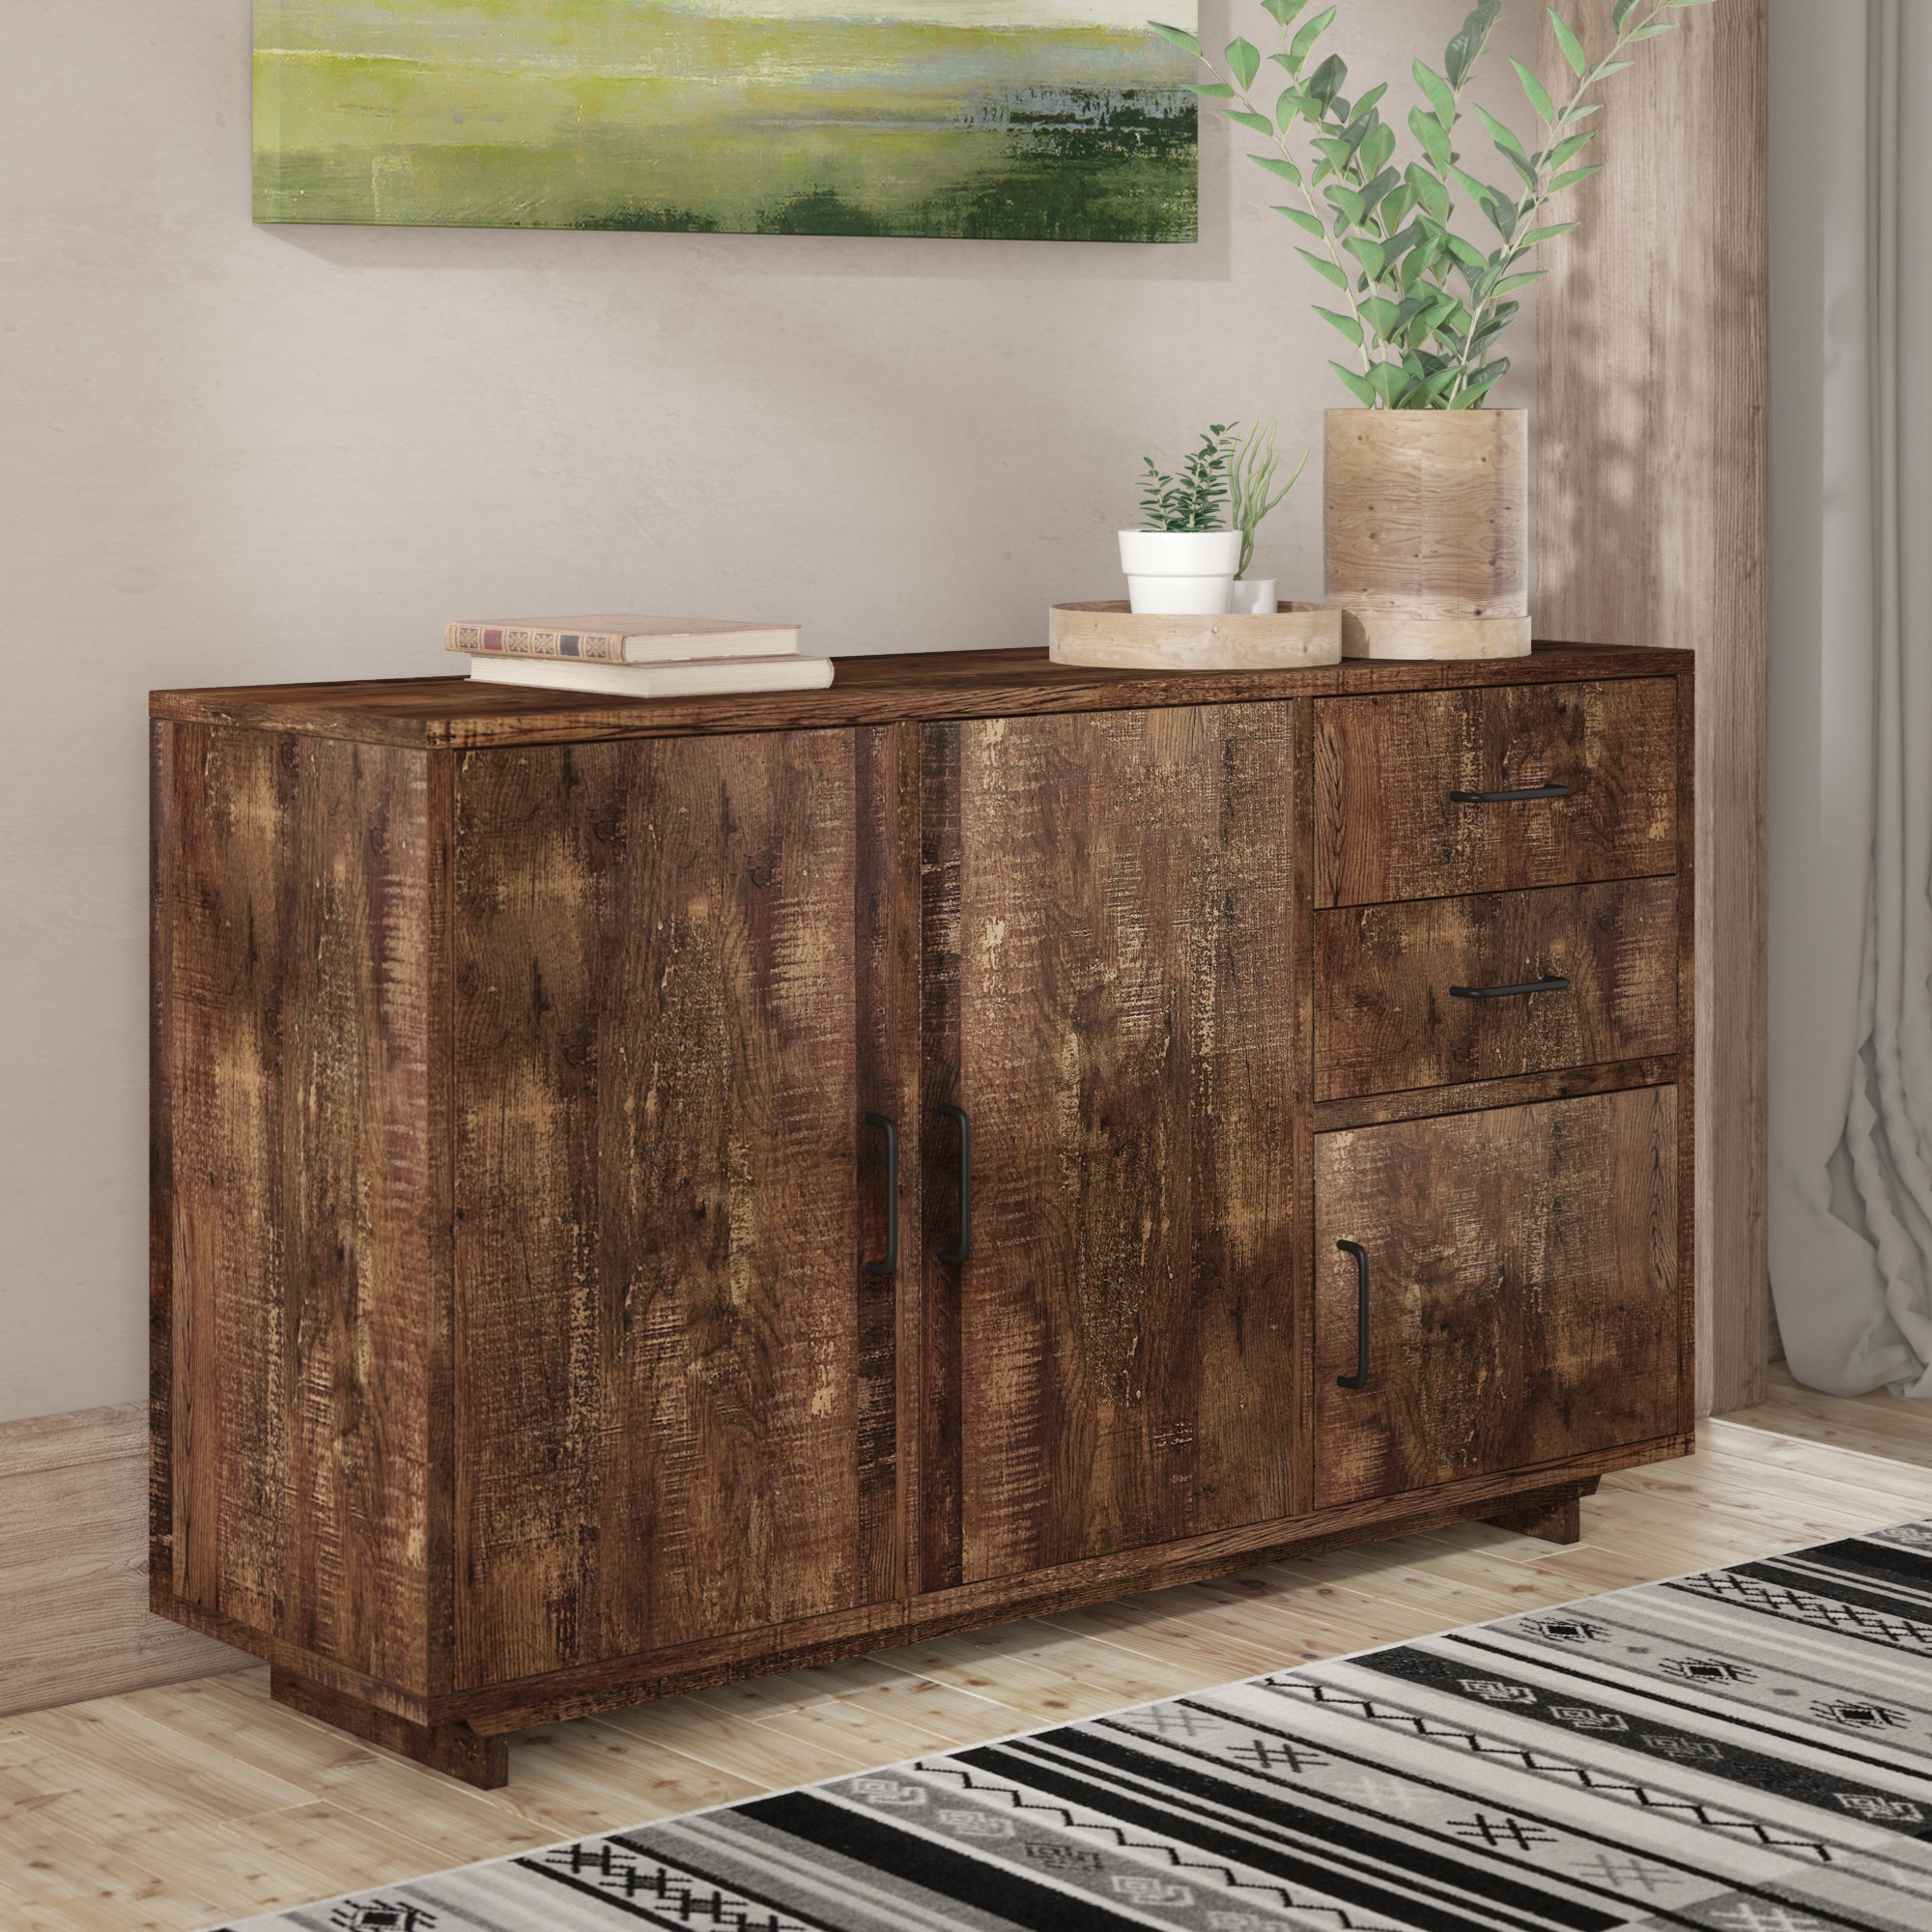 Narrow Dining Room Sideboards | Wayfair With Regard To Most Current Pineville Dining Sideboards (#14 of 20)